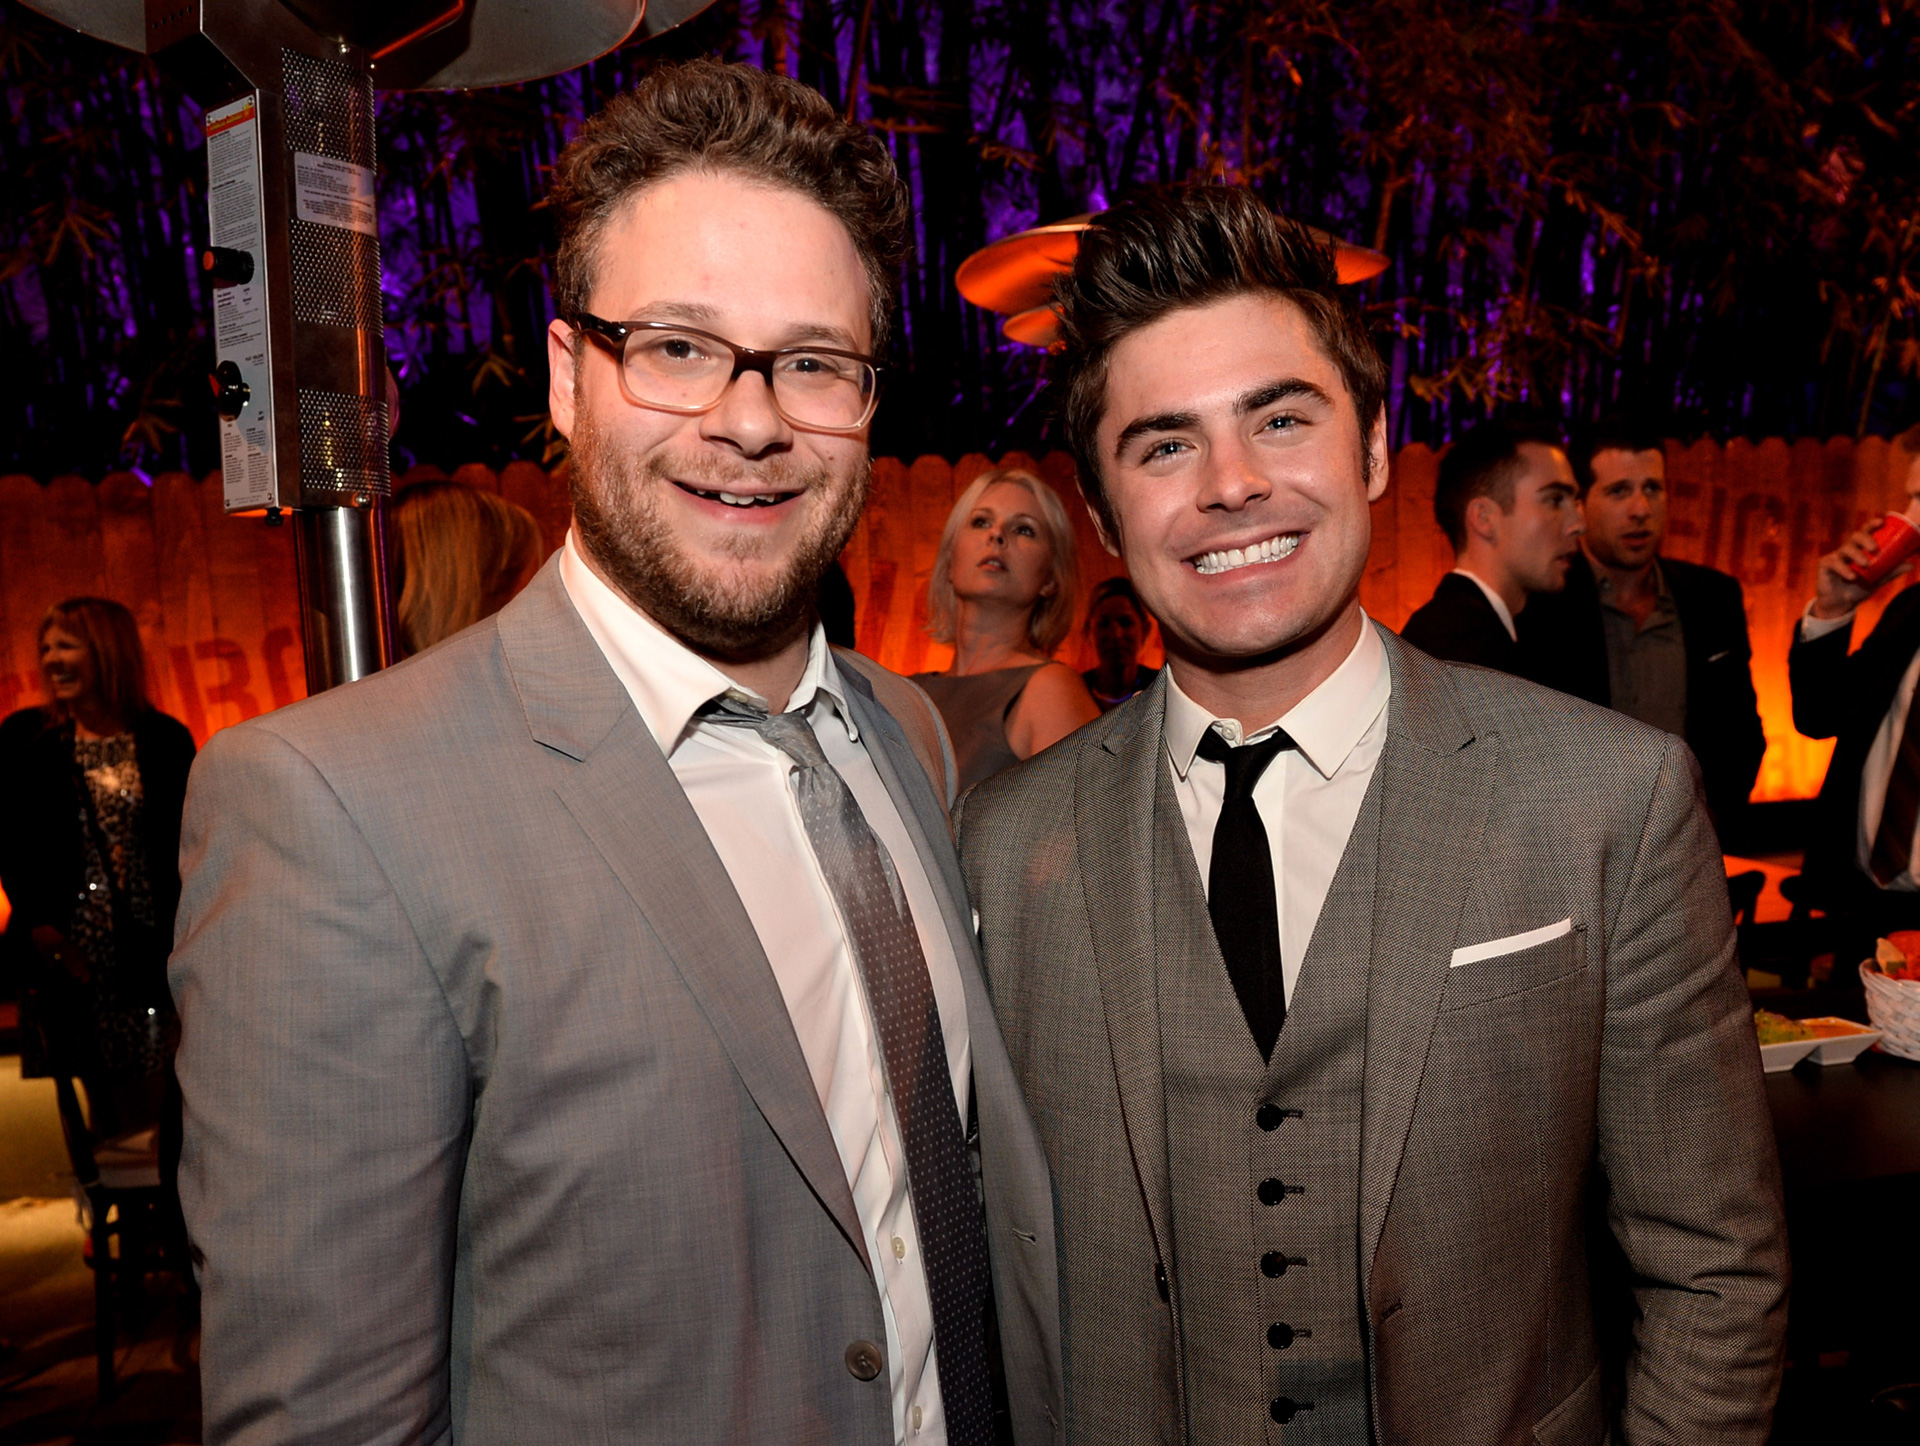 Seth Rogen and Zac Efron